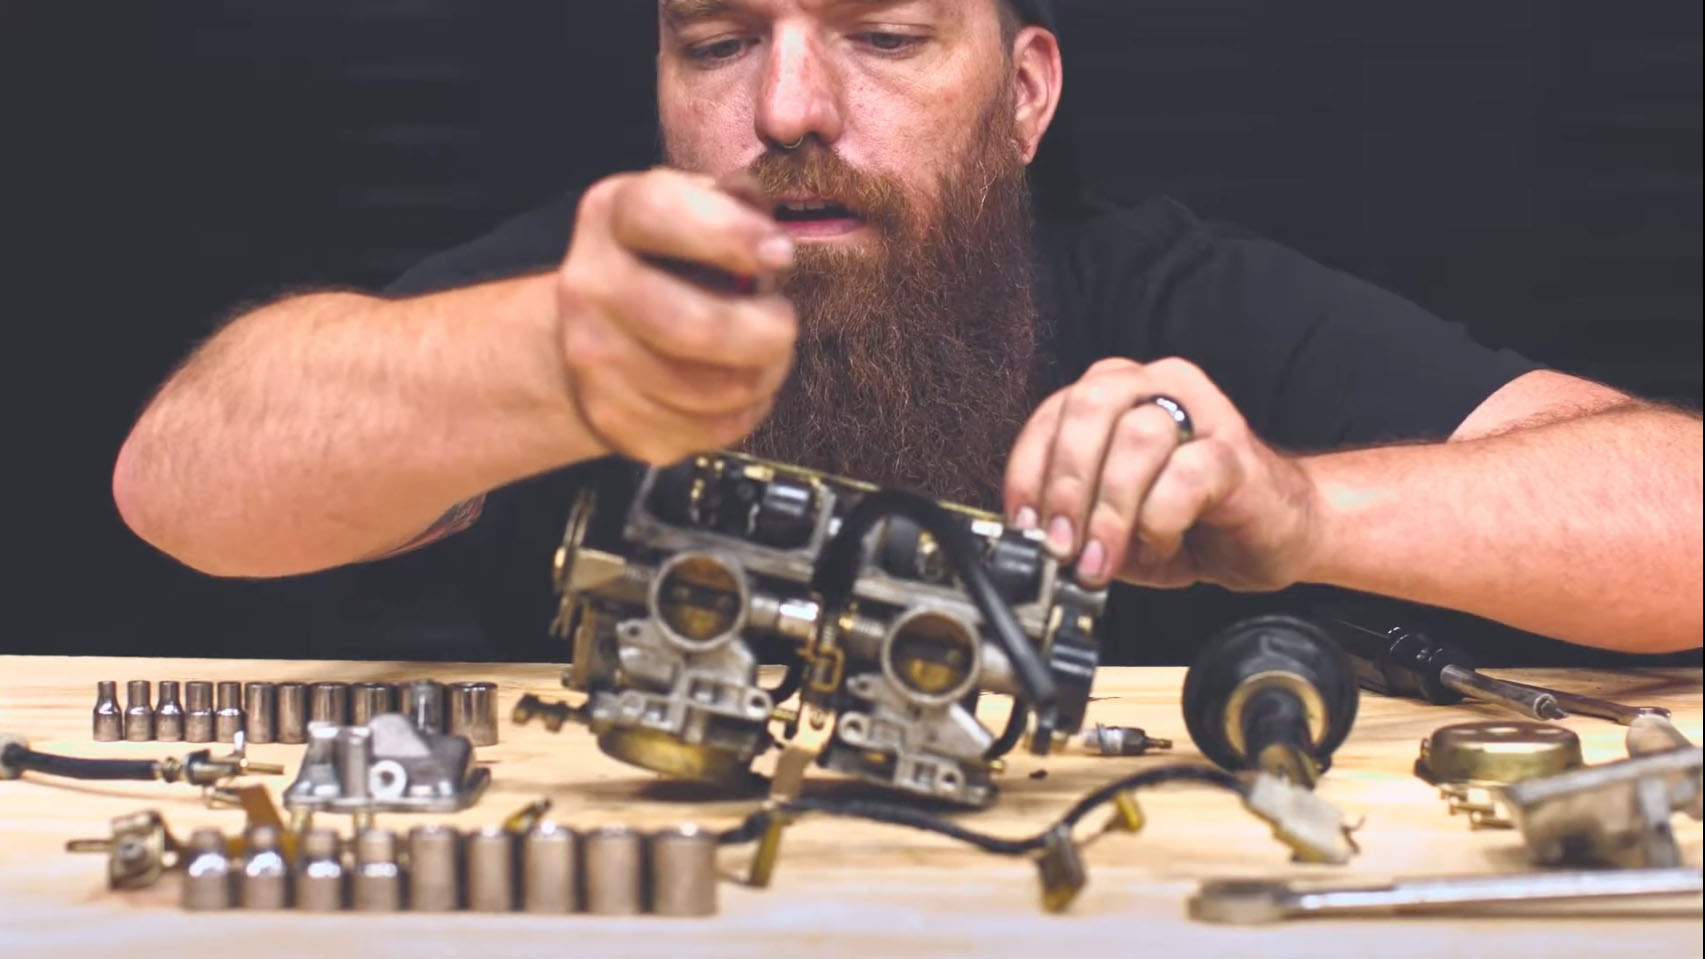 Mathematician, Jeremiah, works on repairing motorcycle parts